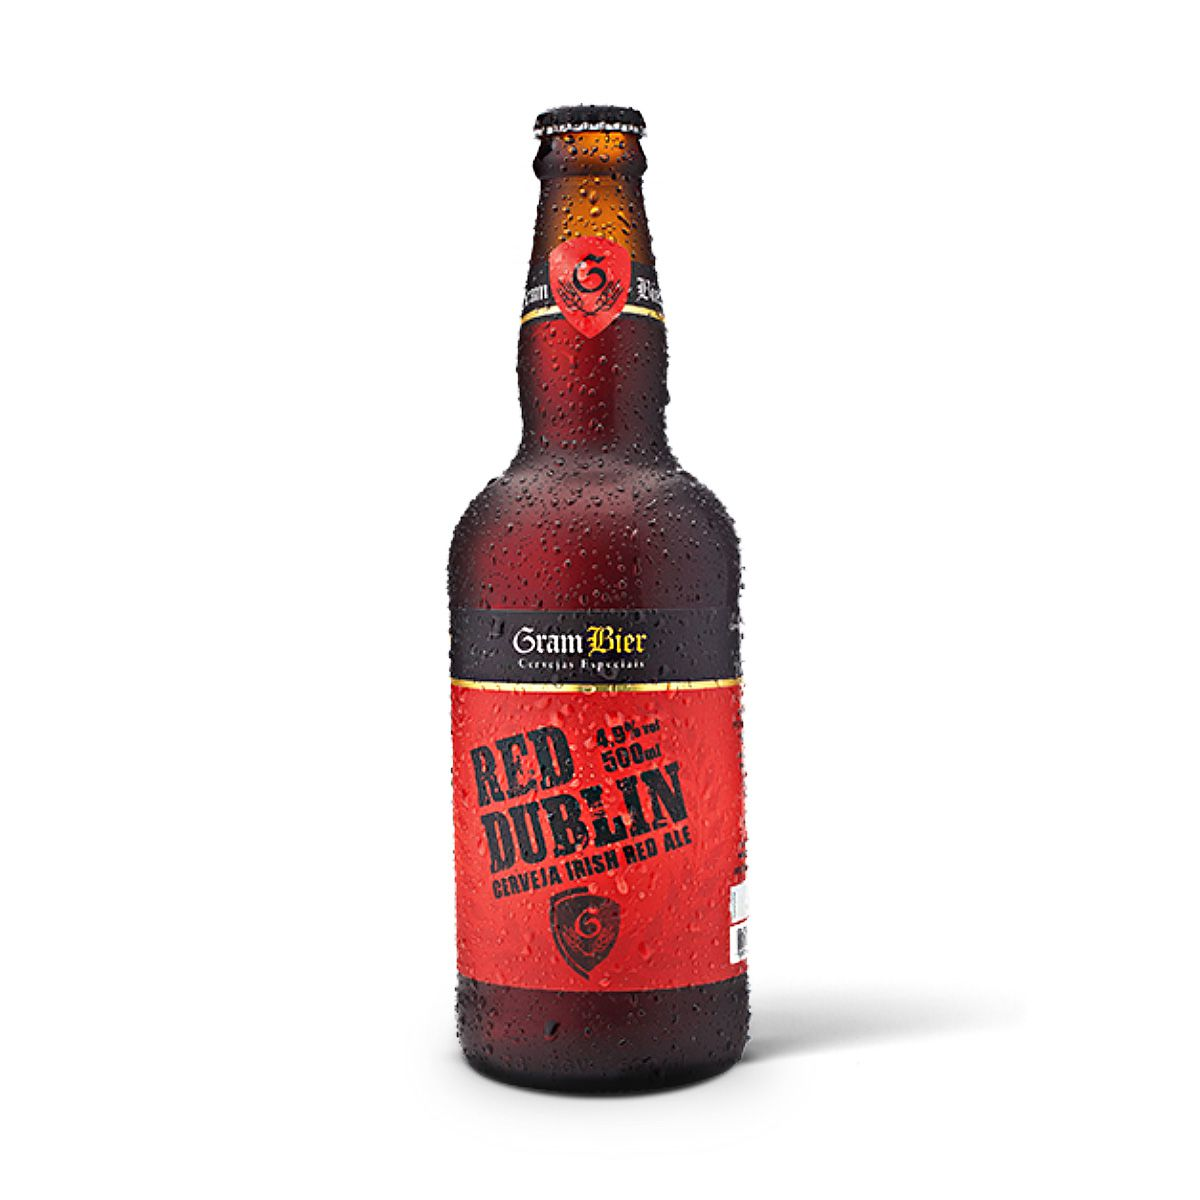 Gram Bier Irish Red Ale Red Dublin 500ml